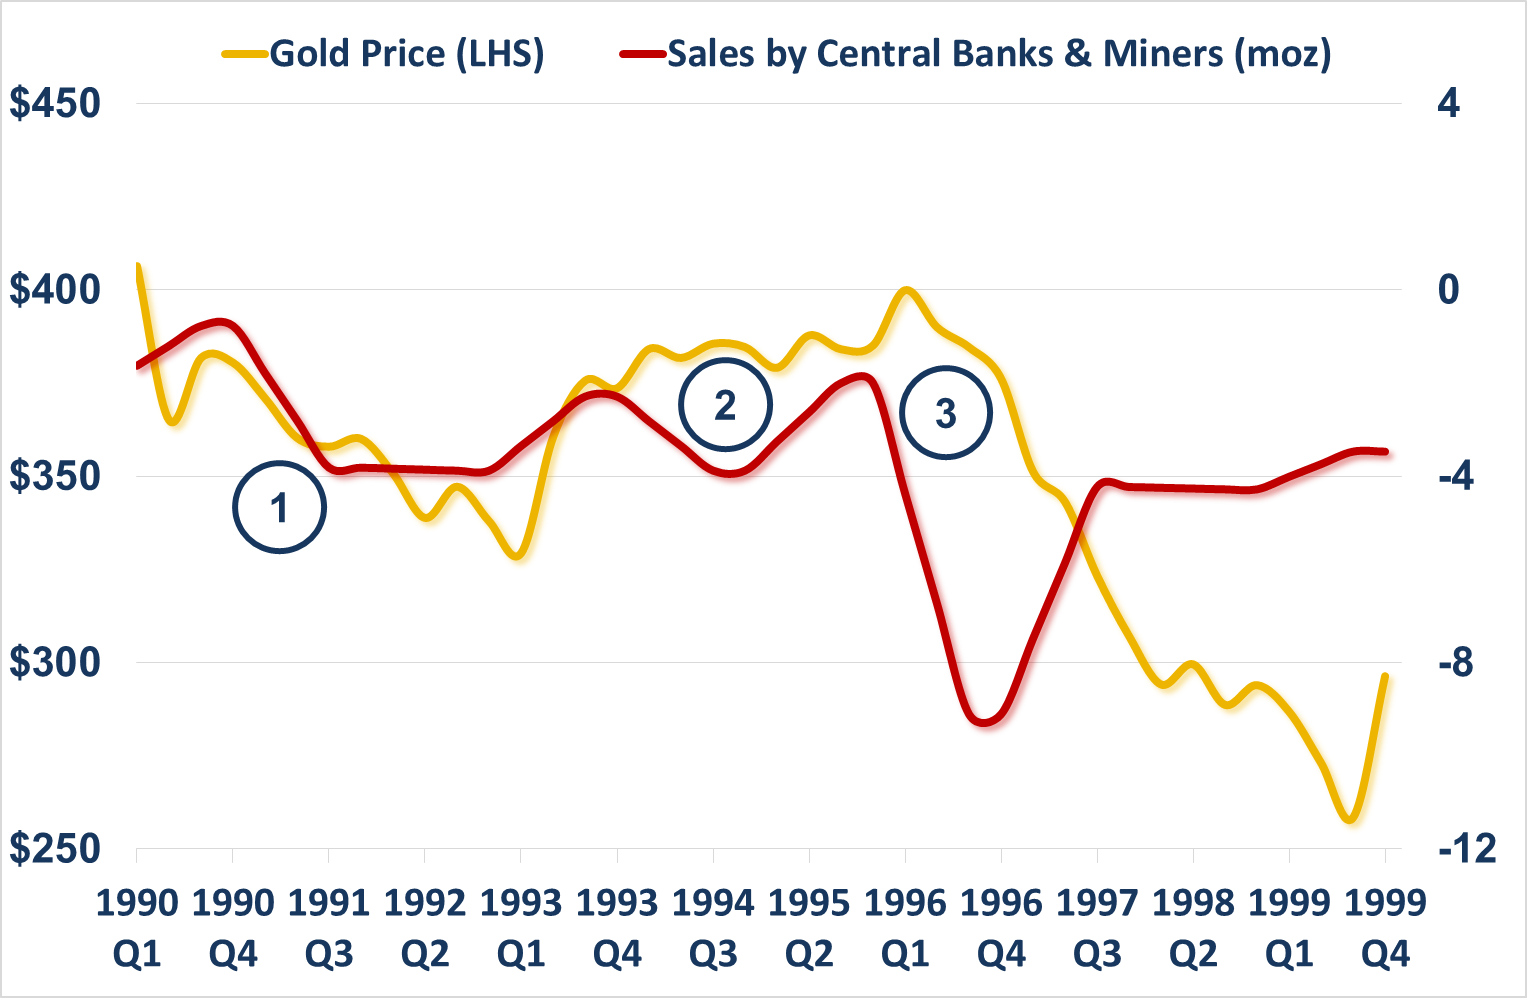 Gold Price and Gold Sales Central Banks Miners 1990s